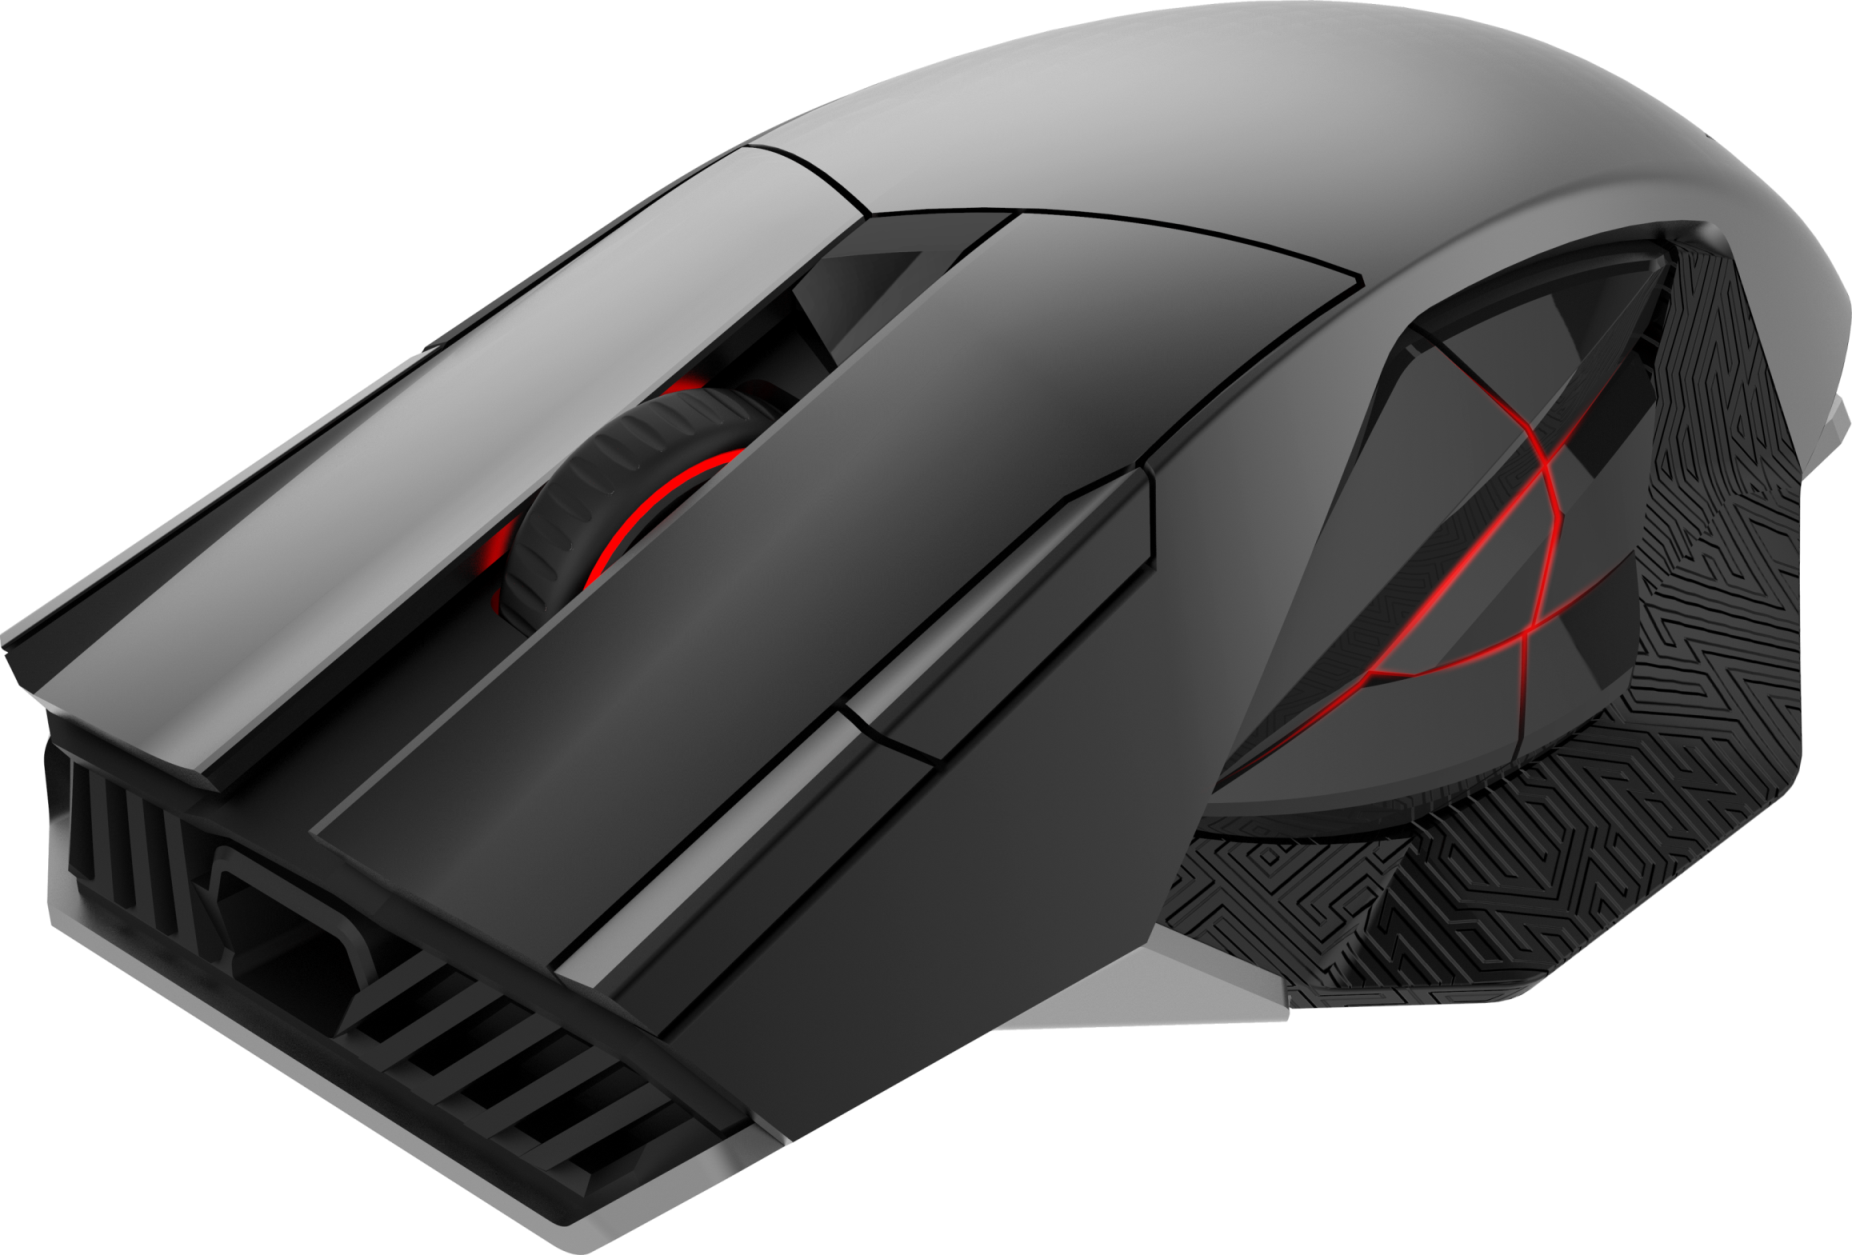 CES 2015: ROG Spatha Gaming Mouse: Wireless/Wired, MMO, Laser Sensor | ROG - Republic of Gamers ...